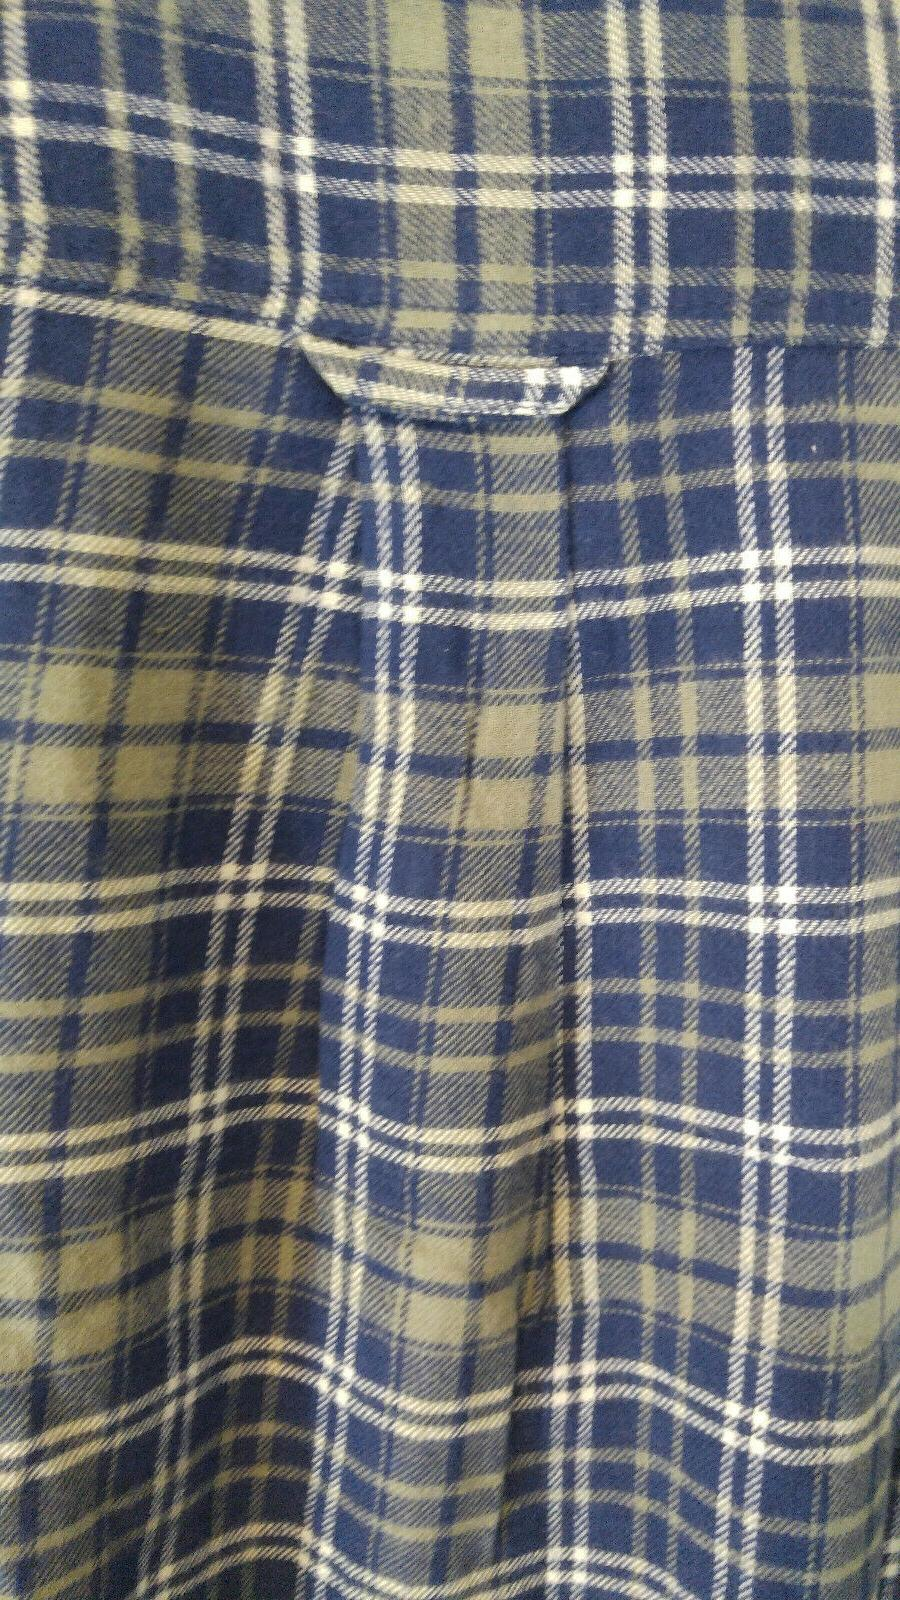 King Size Tall Sleeve Flannel Shirt Blue Gray